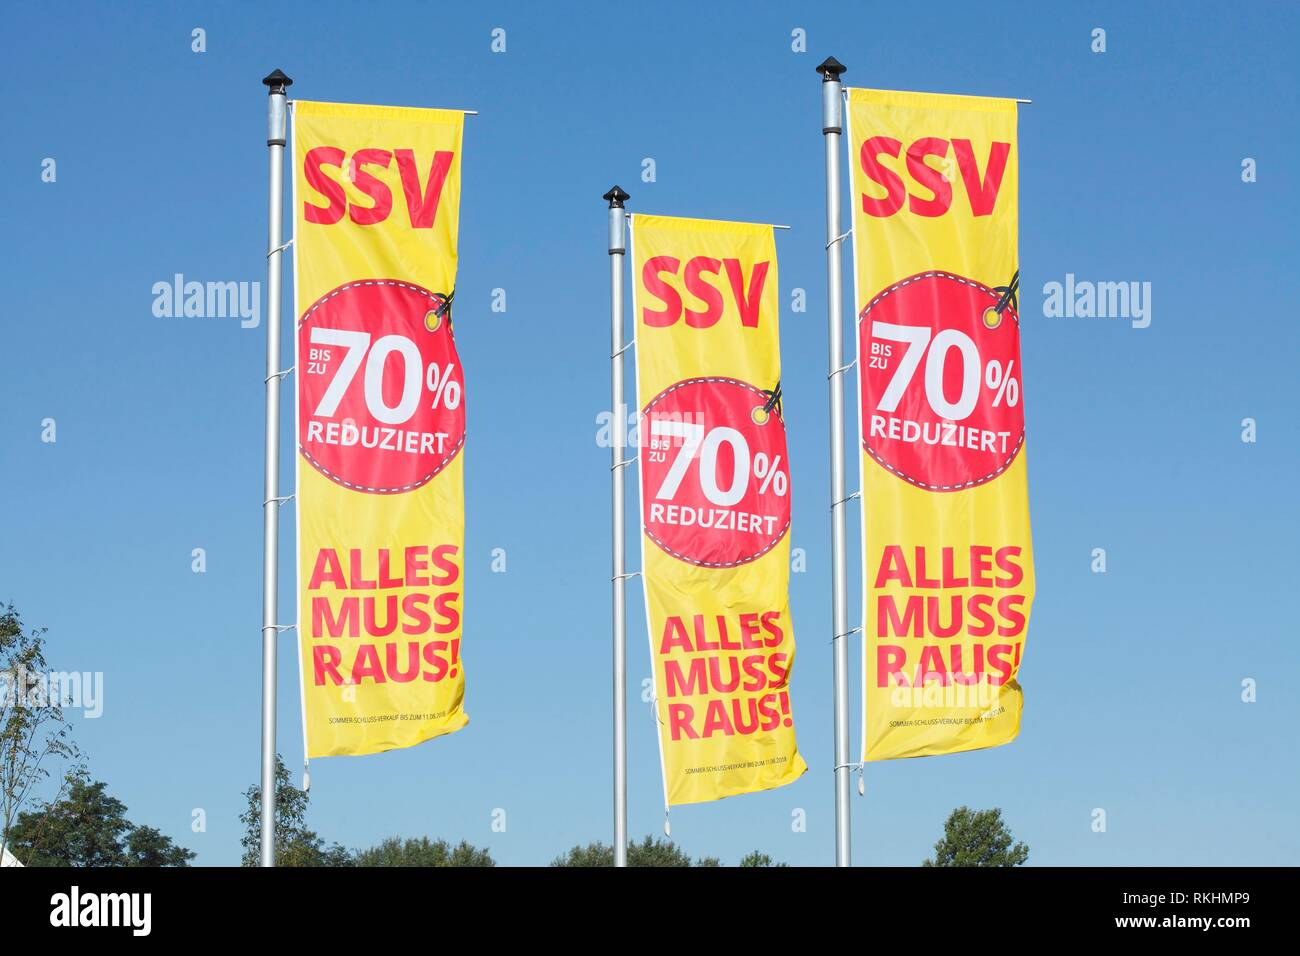 Flags summer sales, prices reduced by up to 70 percent, Germany - Stock Image